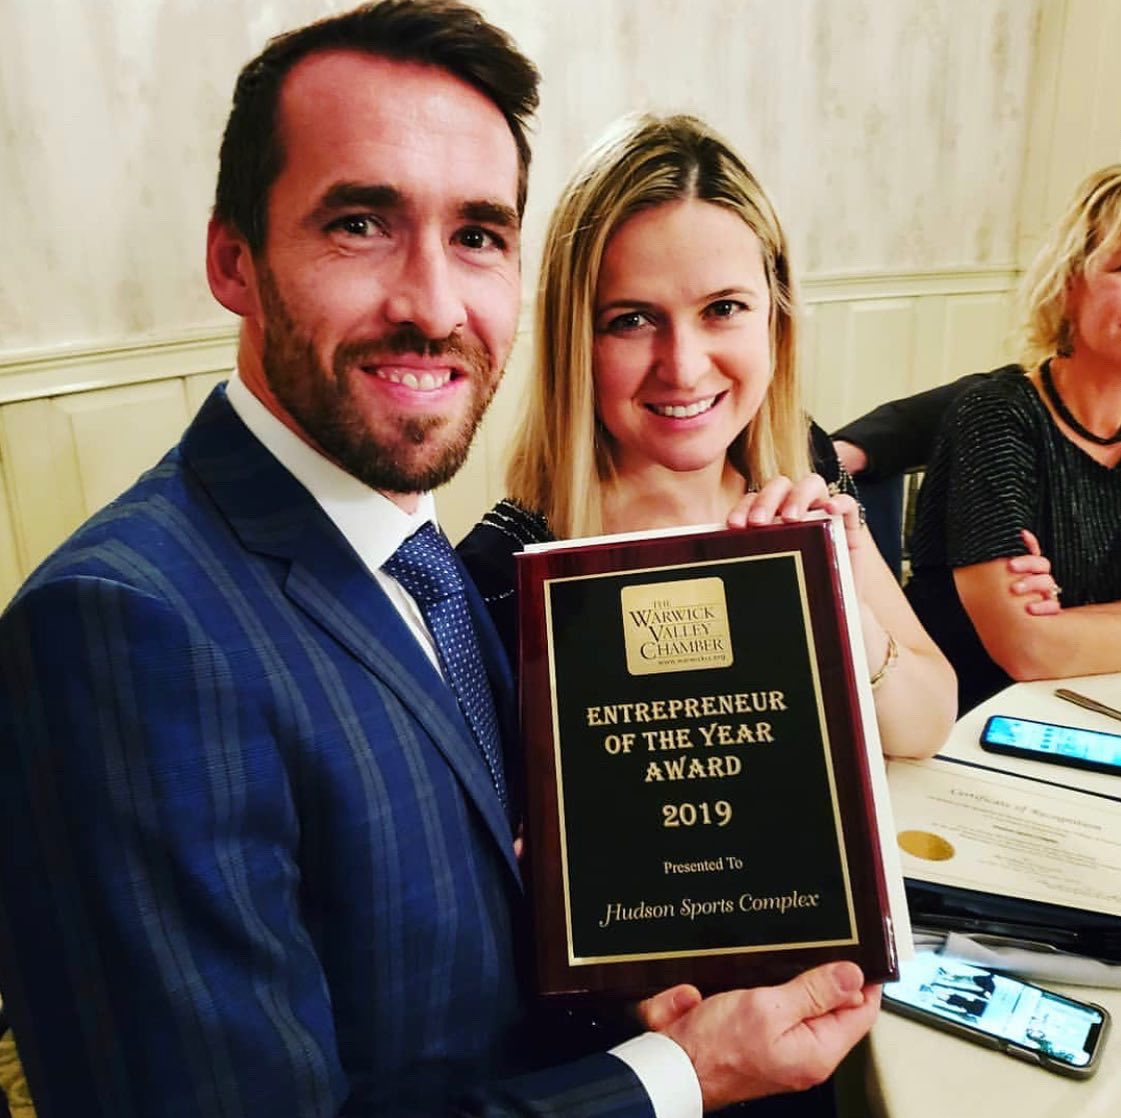 """My wife and I are very honored to be awarded the """"entrepreneur of the year 2019"""" award by the #WarwickChamberofCommerce for our work with @hudsonsportscom. This reflects the great teamwork at from everybody at Hudson Sports Complex and inspires us. #warwickny #warwick"""